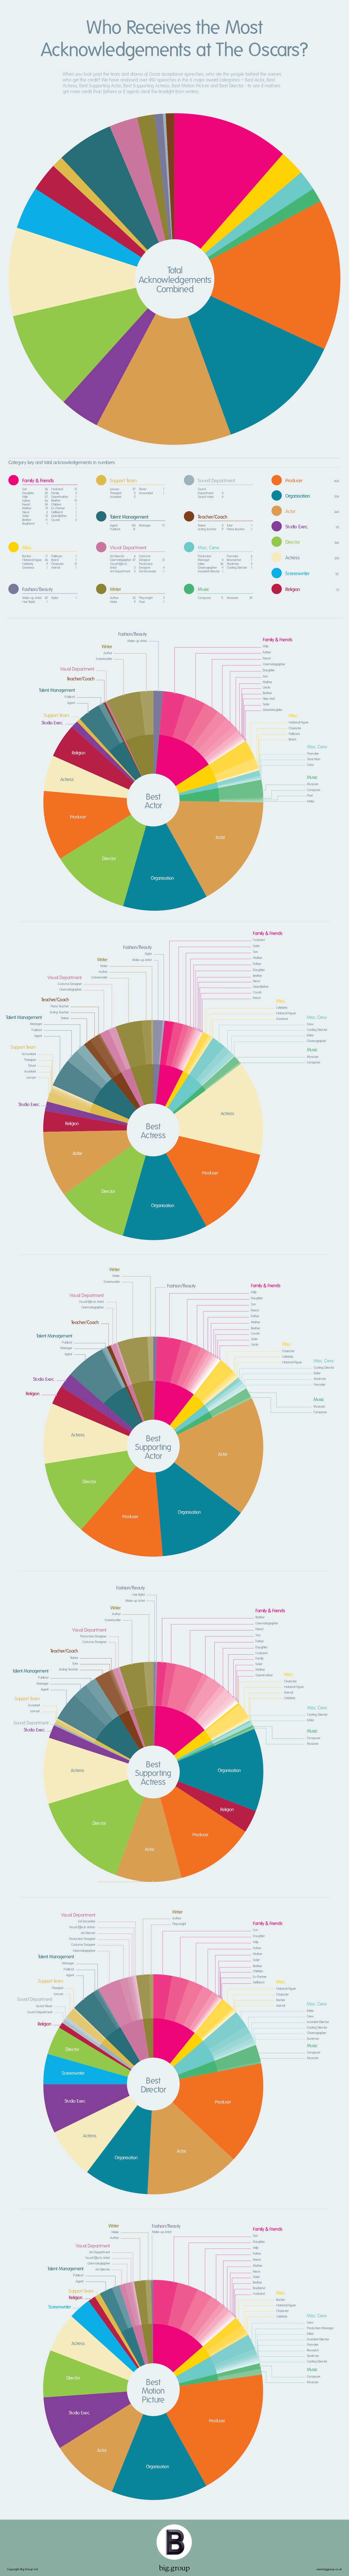 Who Receives the Most Acknowledgements at The Oscars? Infographic